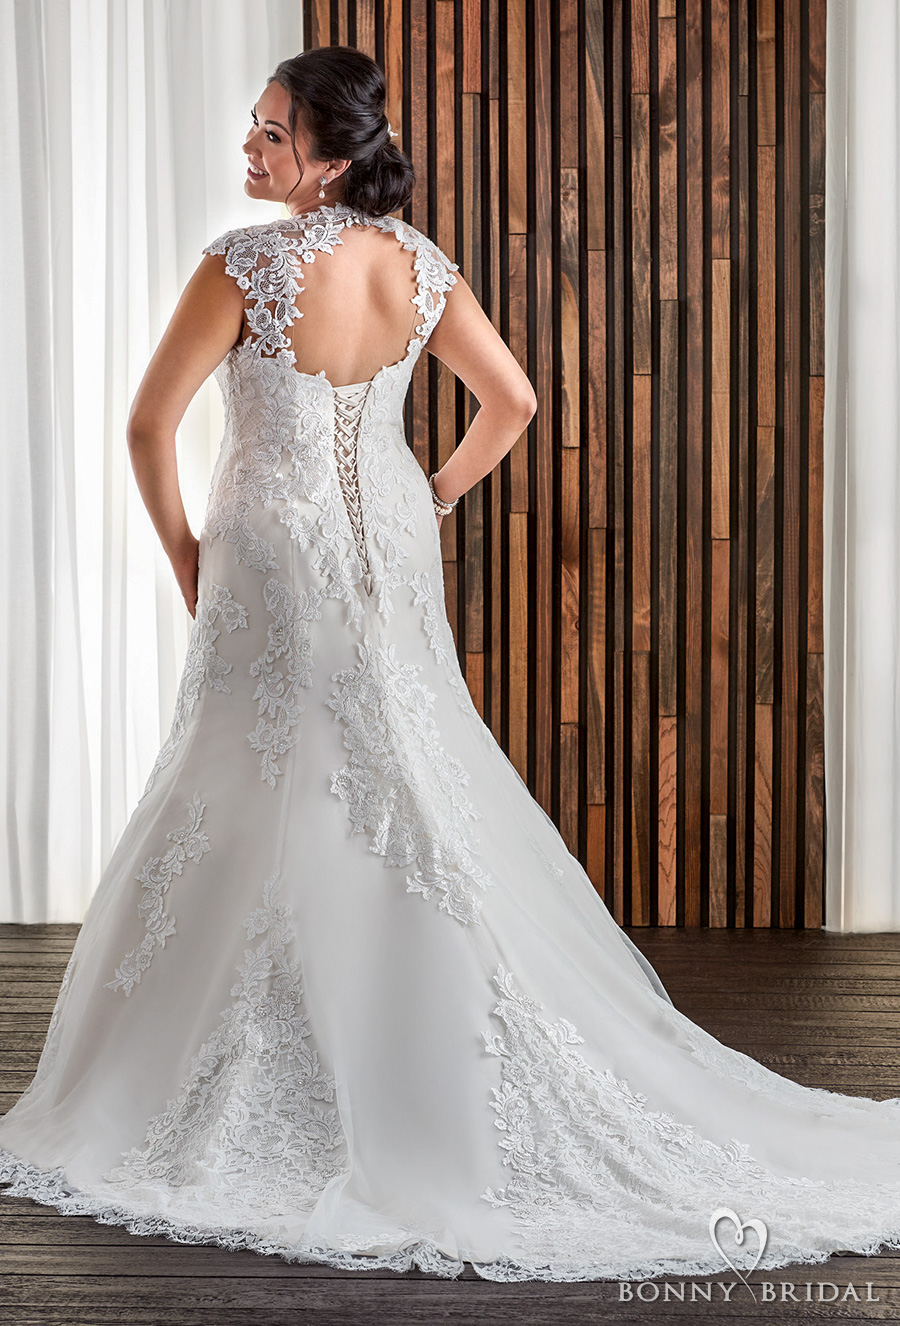 Bonny Bridal Wedding Dresses Unforgettable Styles For Every Bride